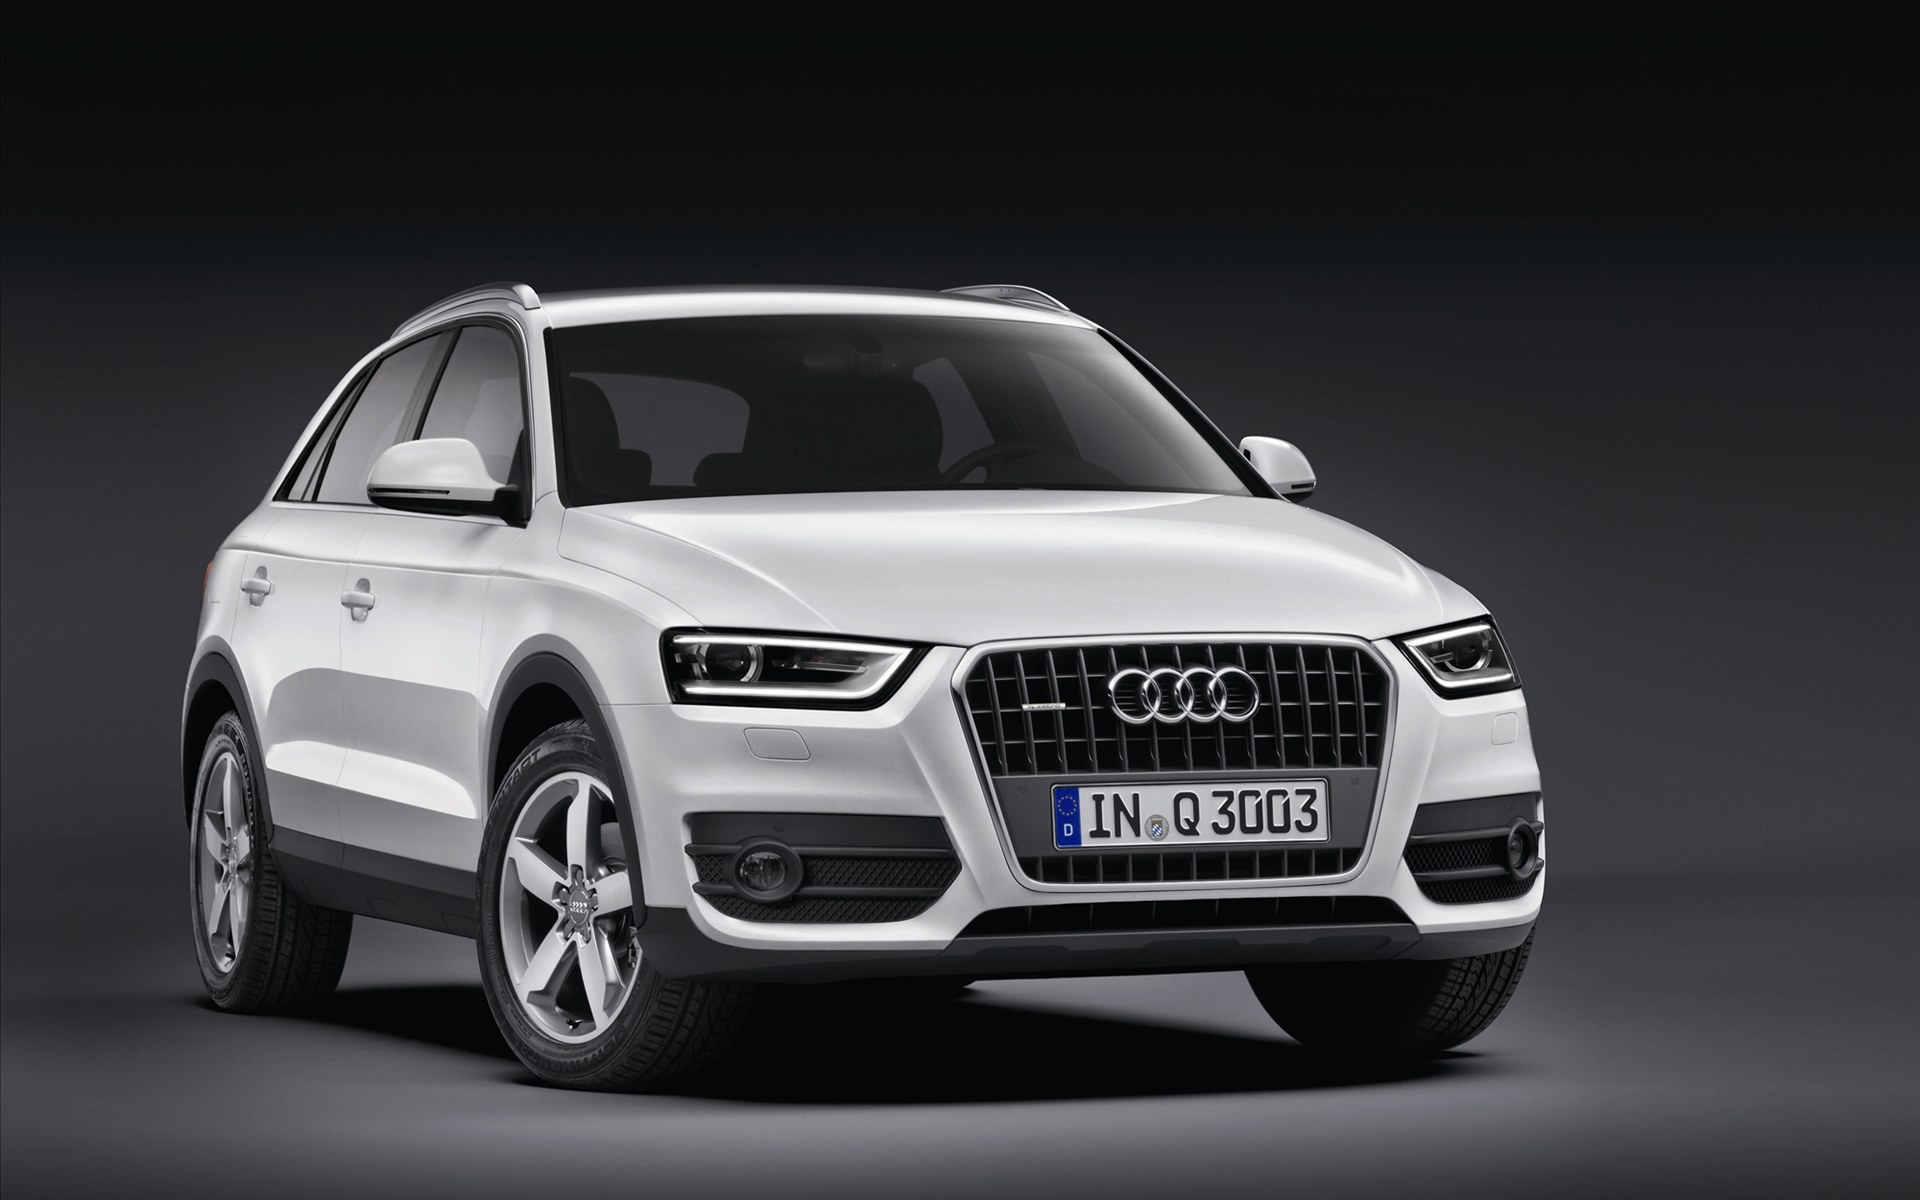 Images Of Audi Cars Audi Cars Wallpapers HD